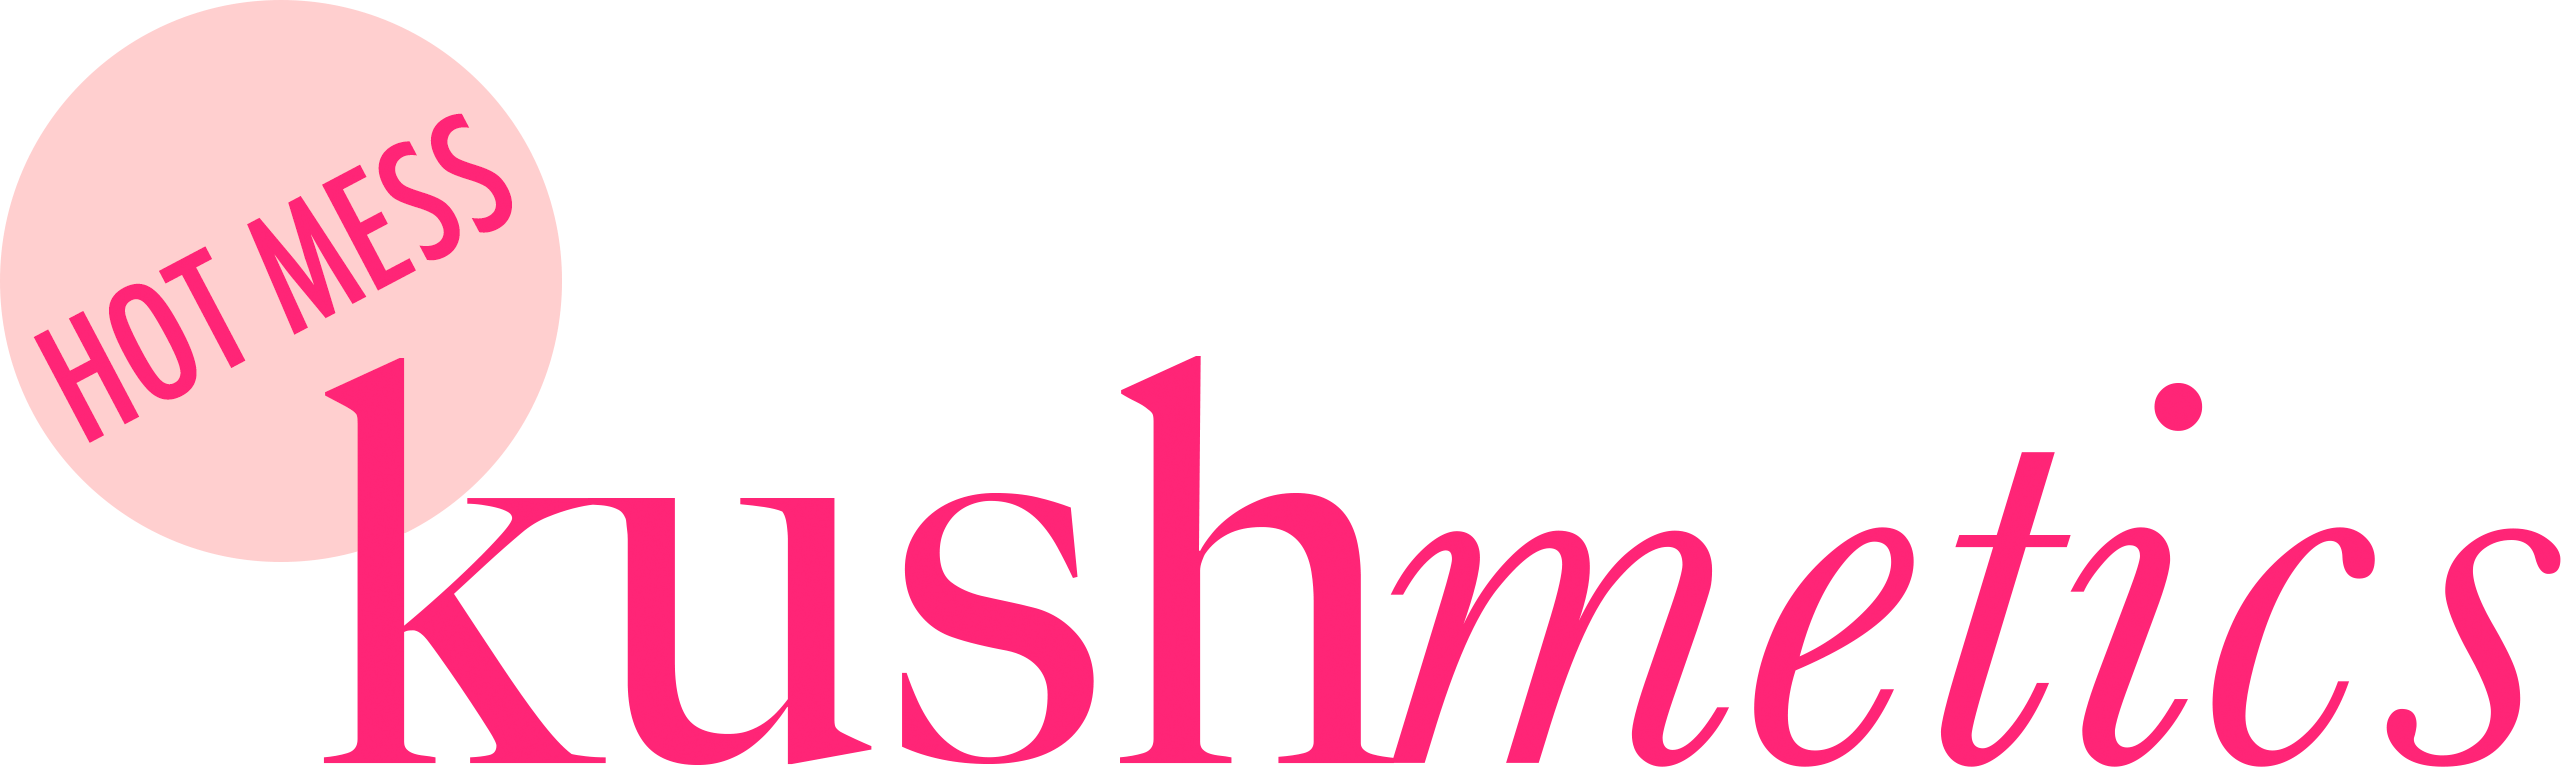 Hot Mess Kushmetics Logo